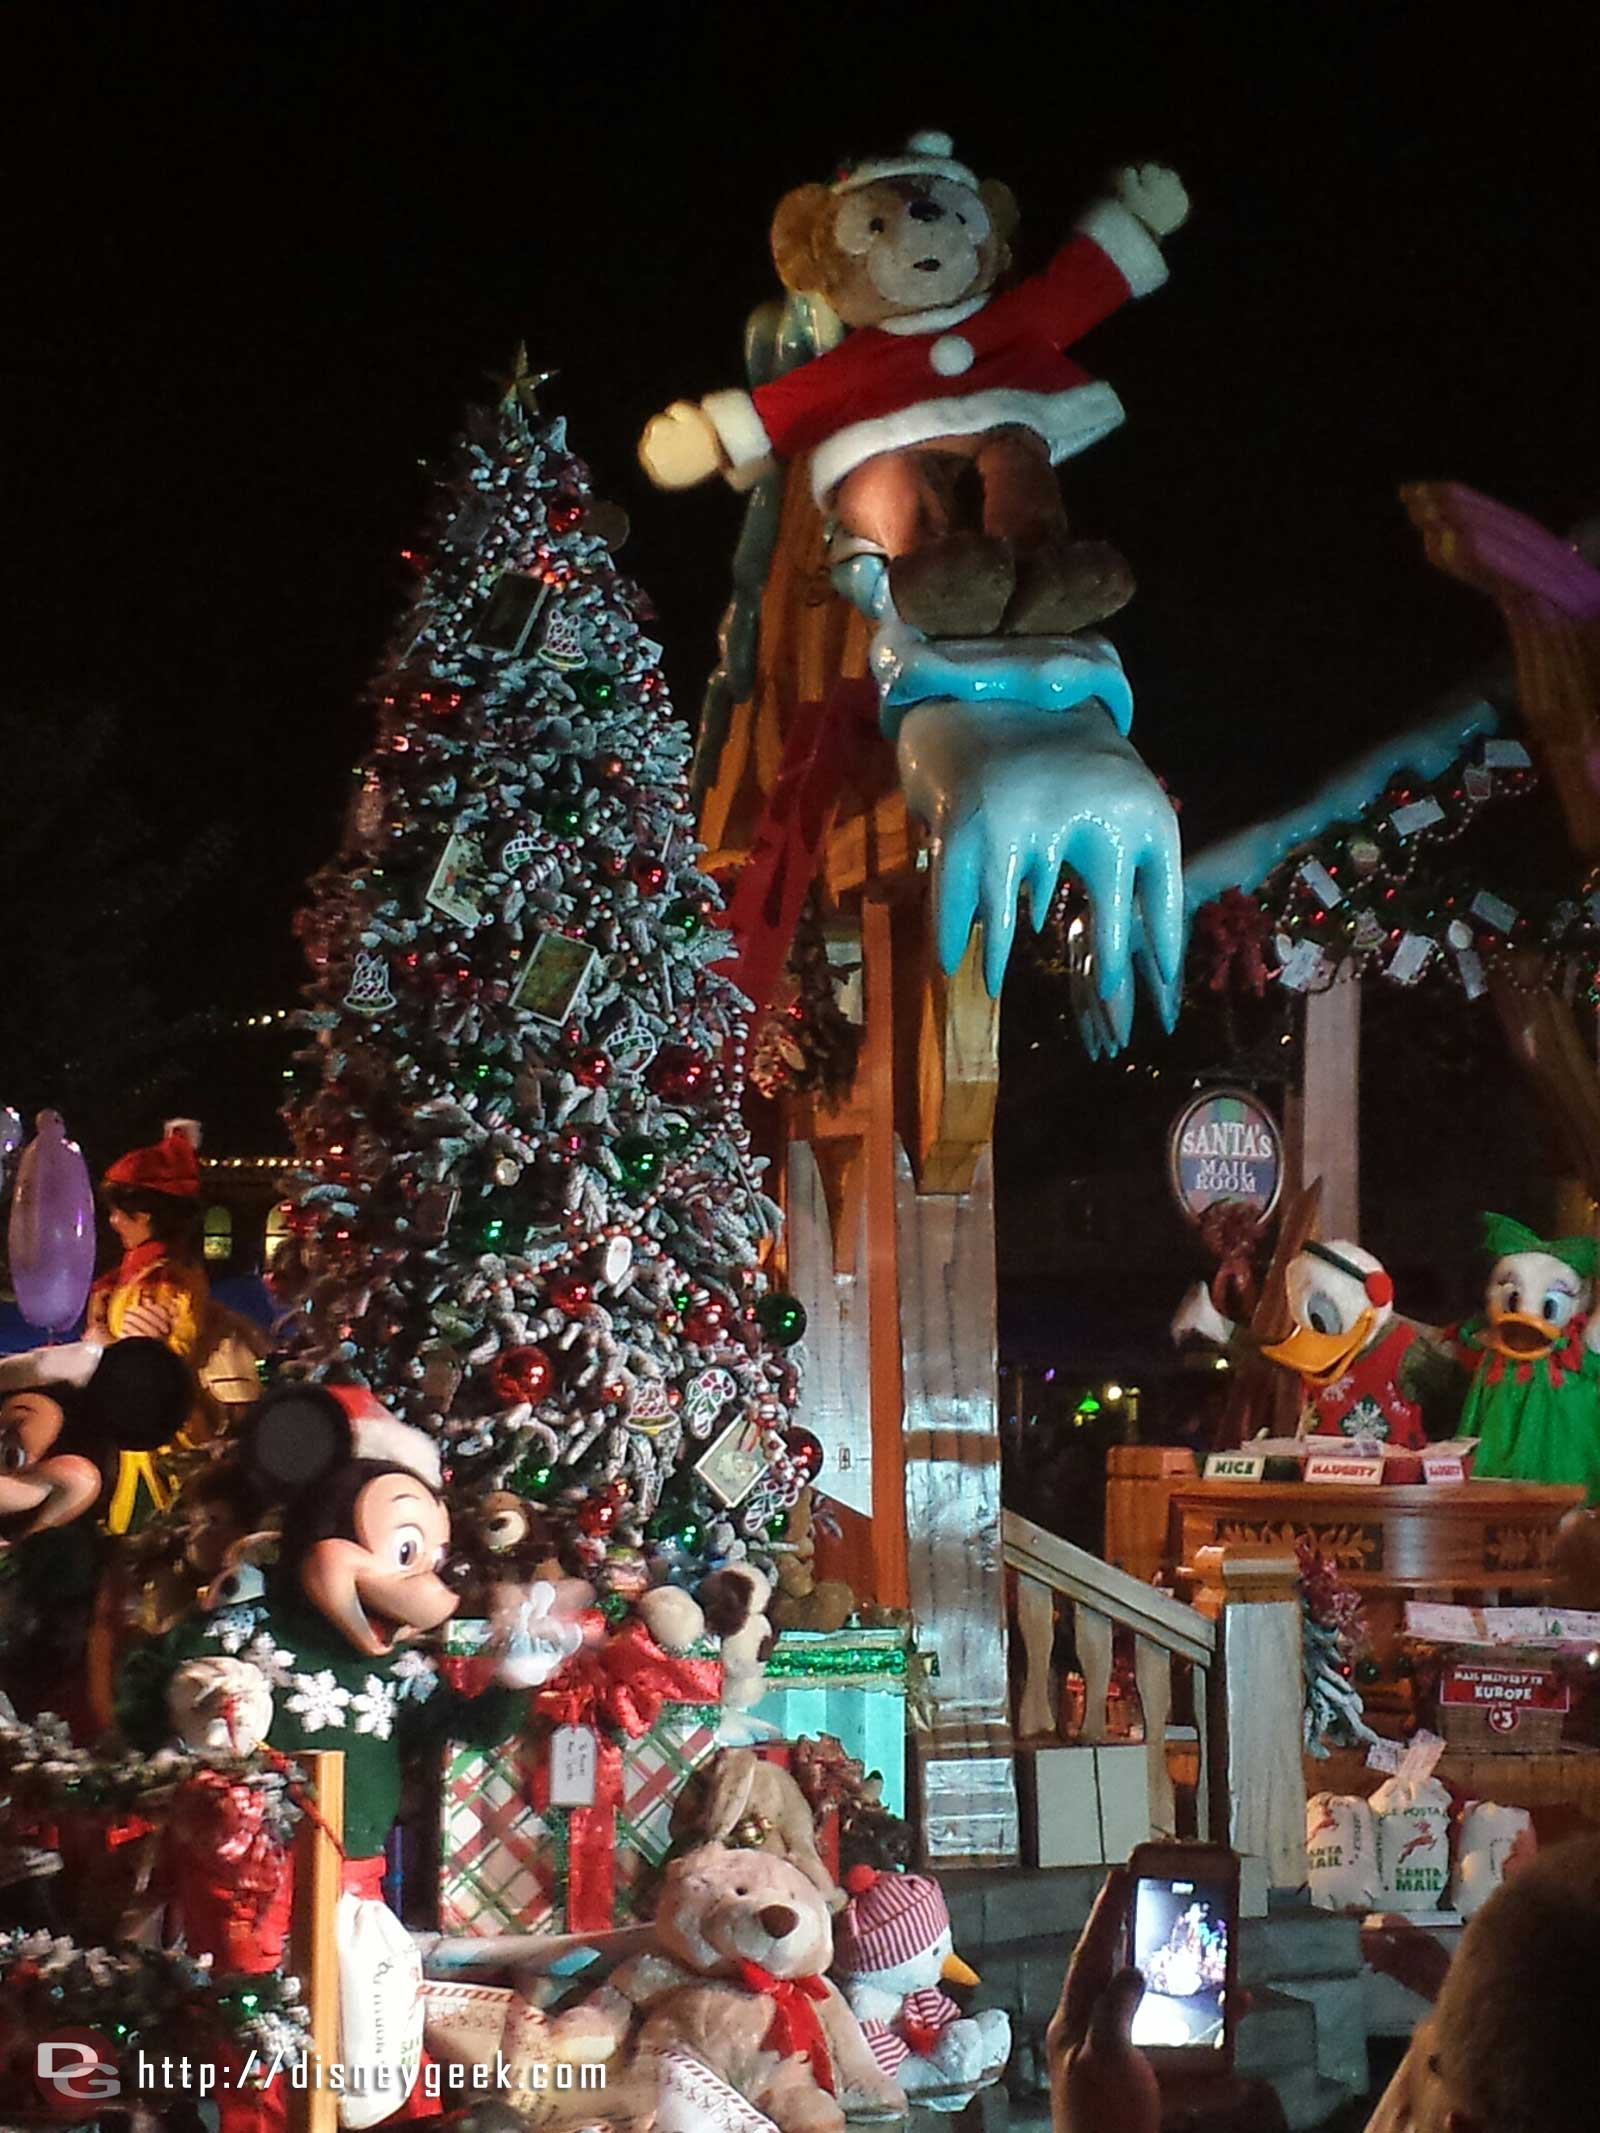 A Christmas Fantasy Parade – Duffy shares the mailroom float with Mickey, Minnie, Donald and Daisy #Disneyland